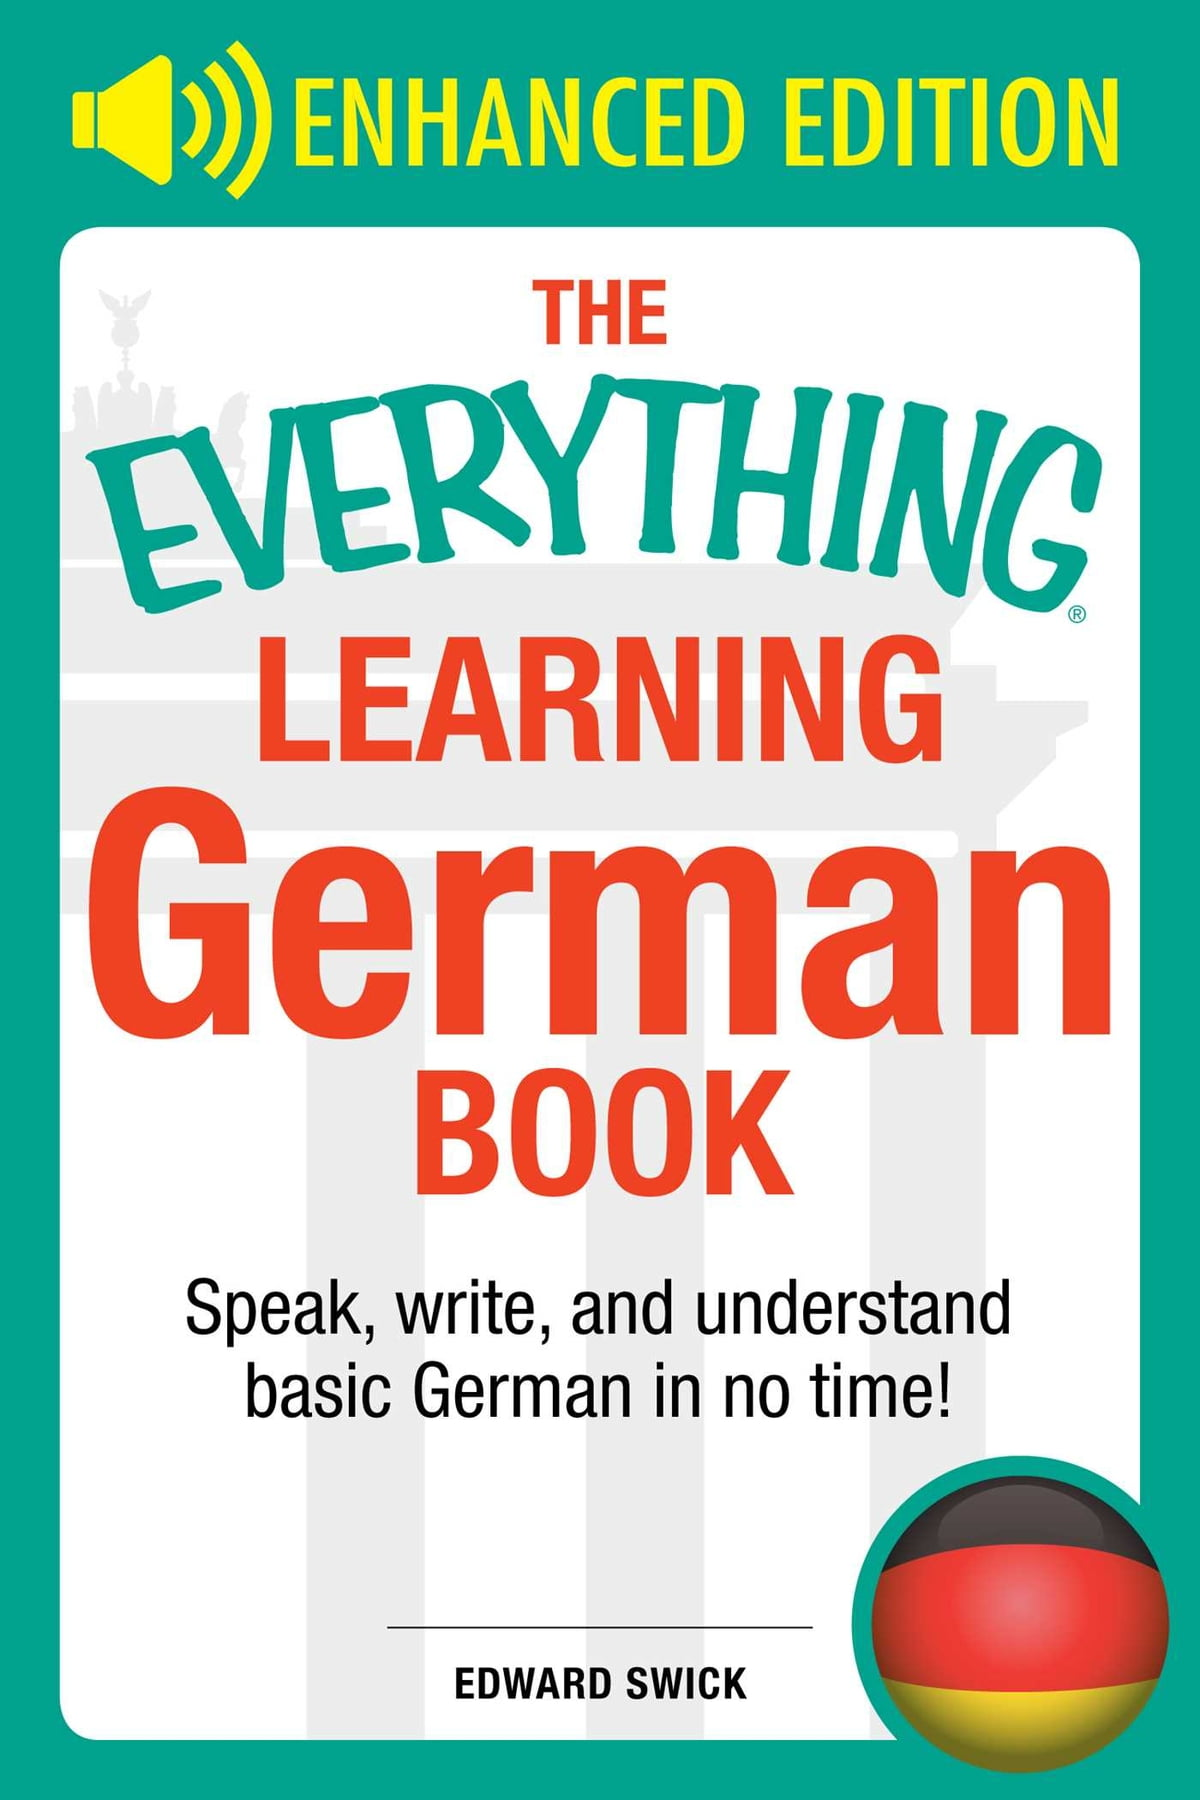 The Everything Learning German Book eBook by Edward Swick - 9781440528705 |  Rakuten Kobo